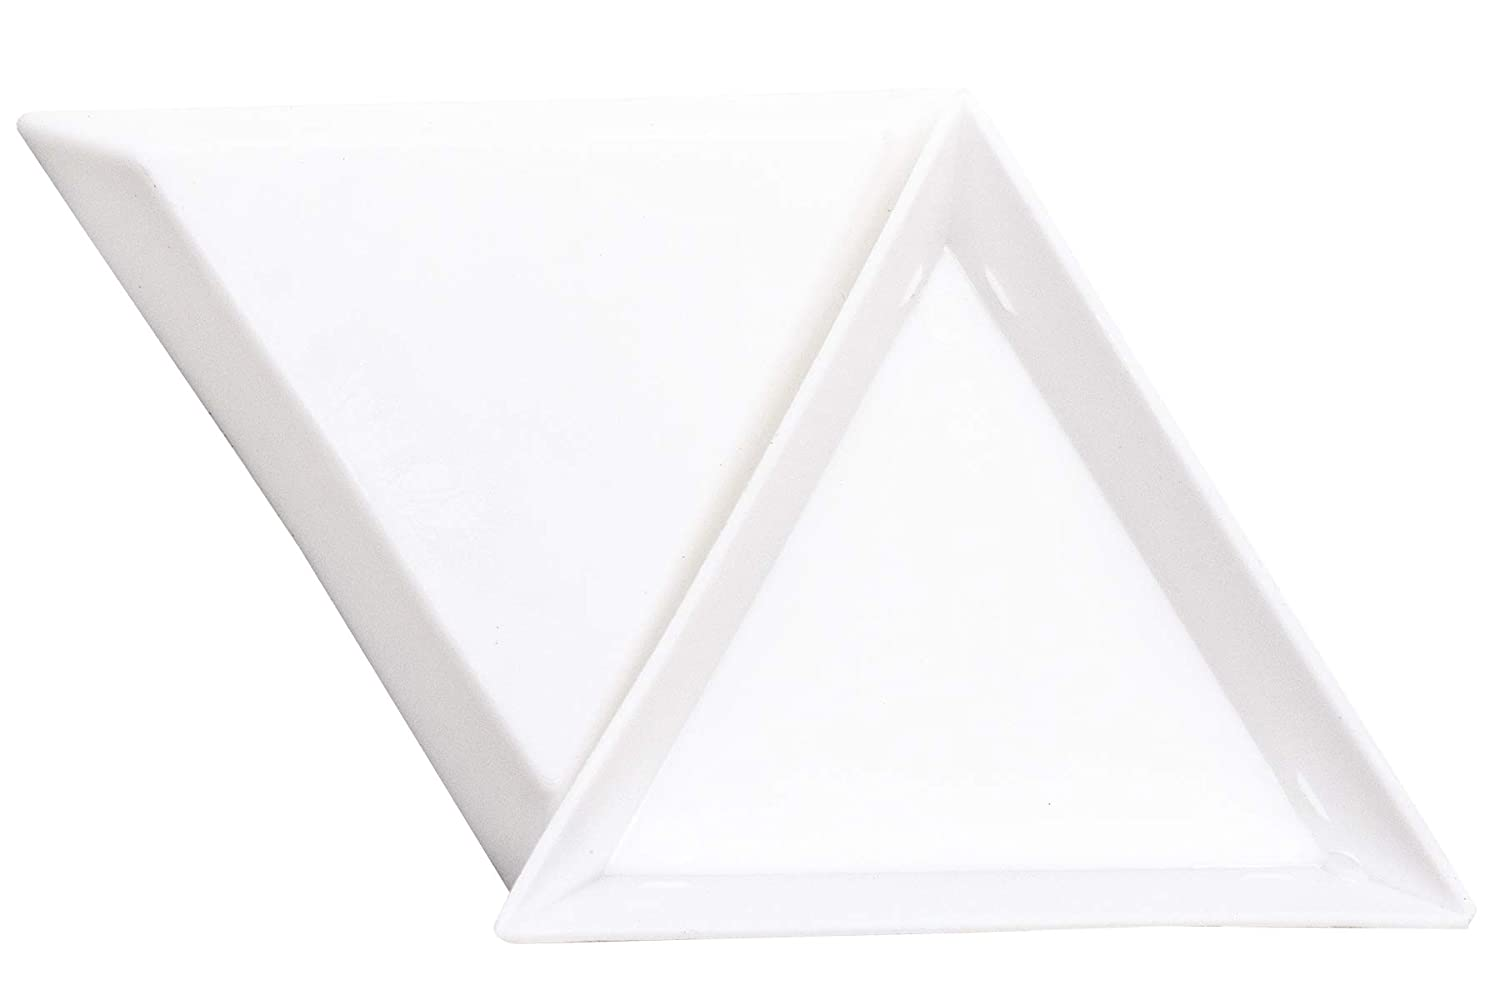 20 Pcs White Triangle Bead Sorting Trays and 2pcs Stainless Steel Bead Tweezers with Scoop AUEAR